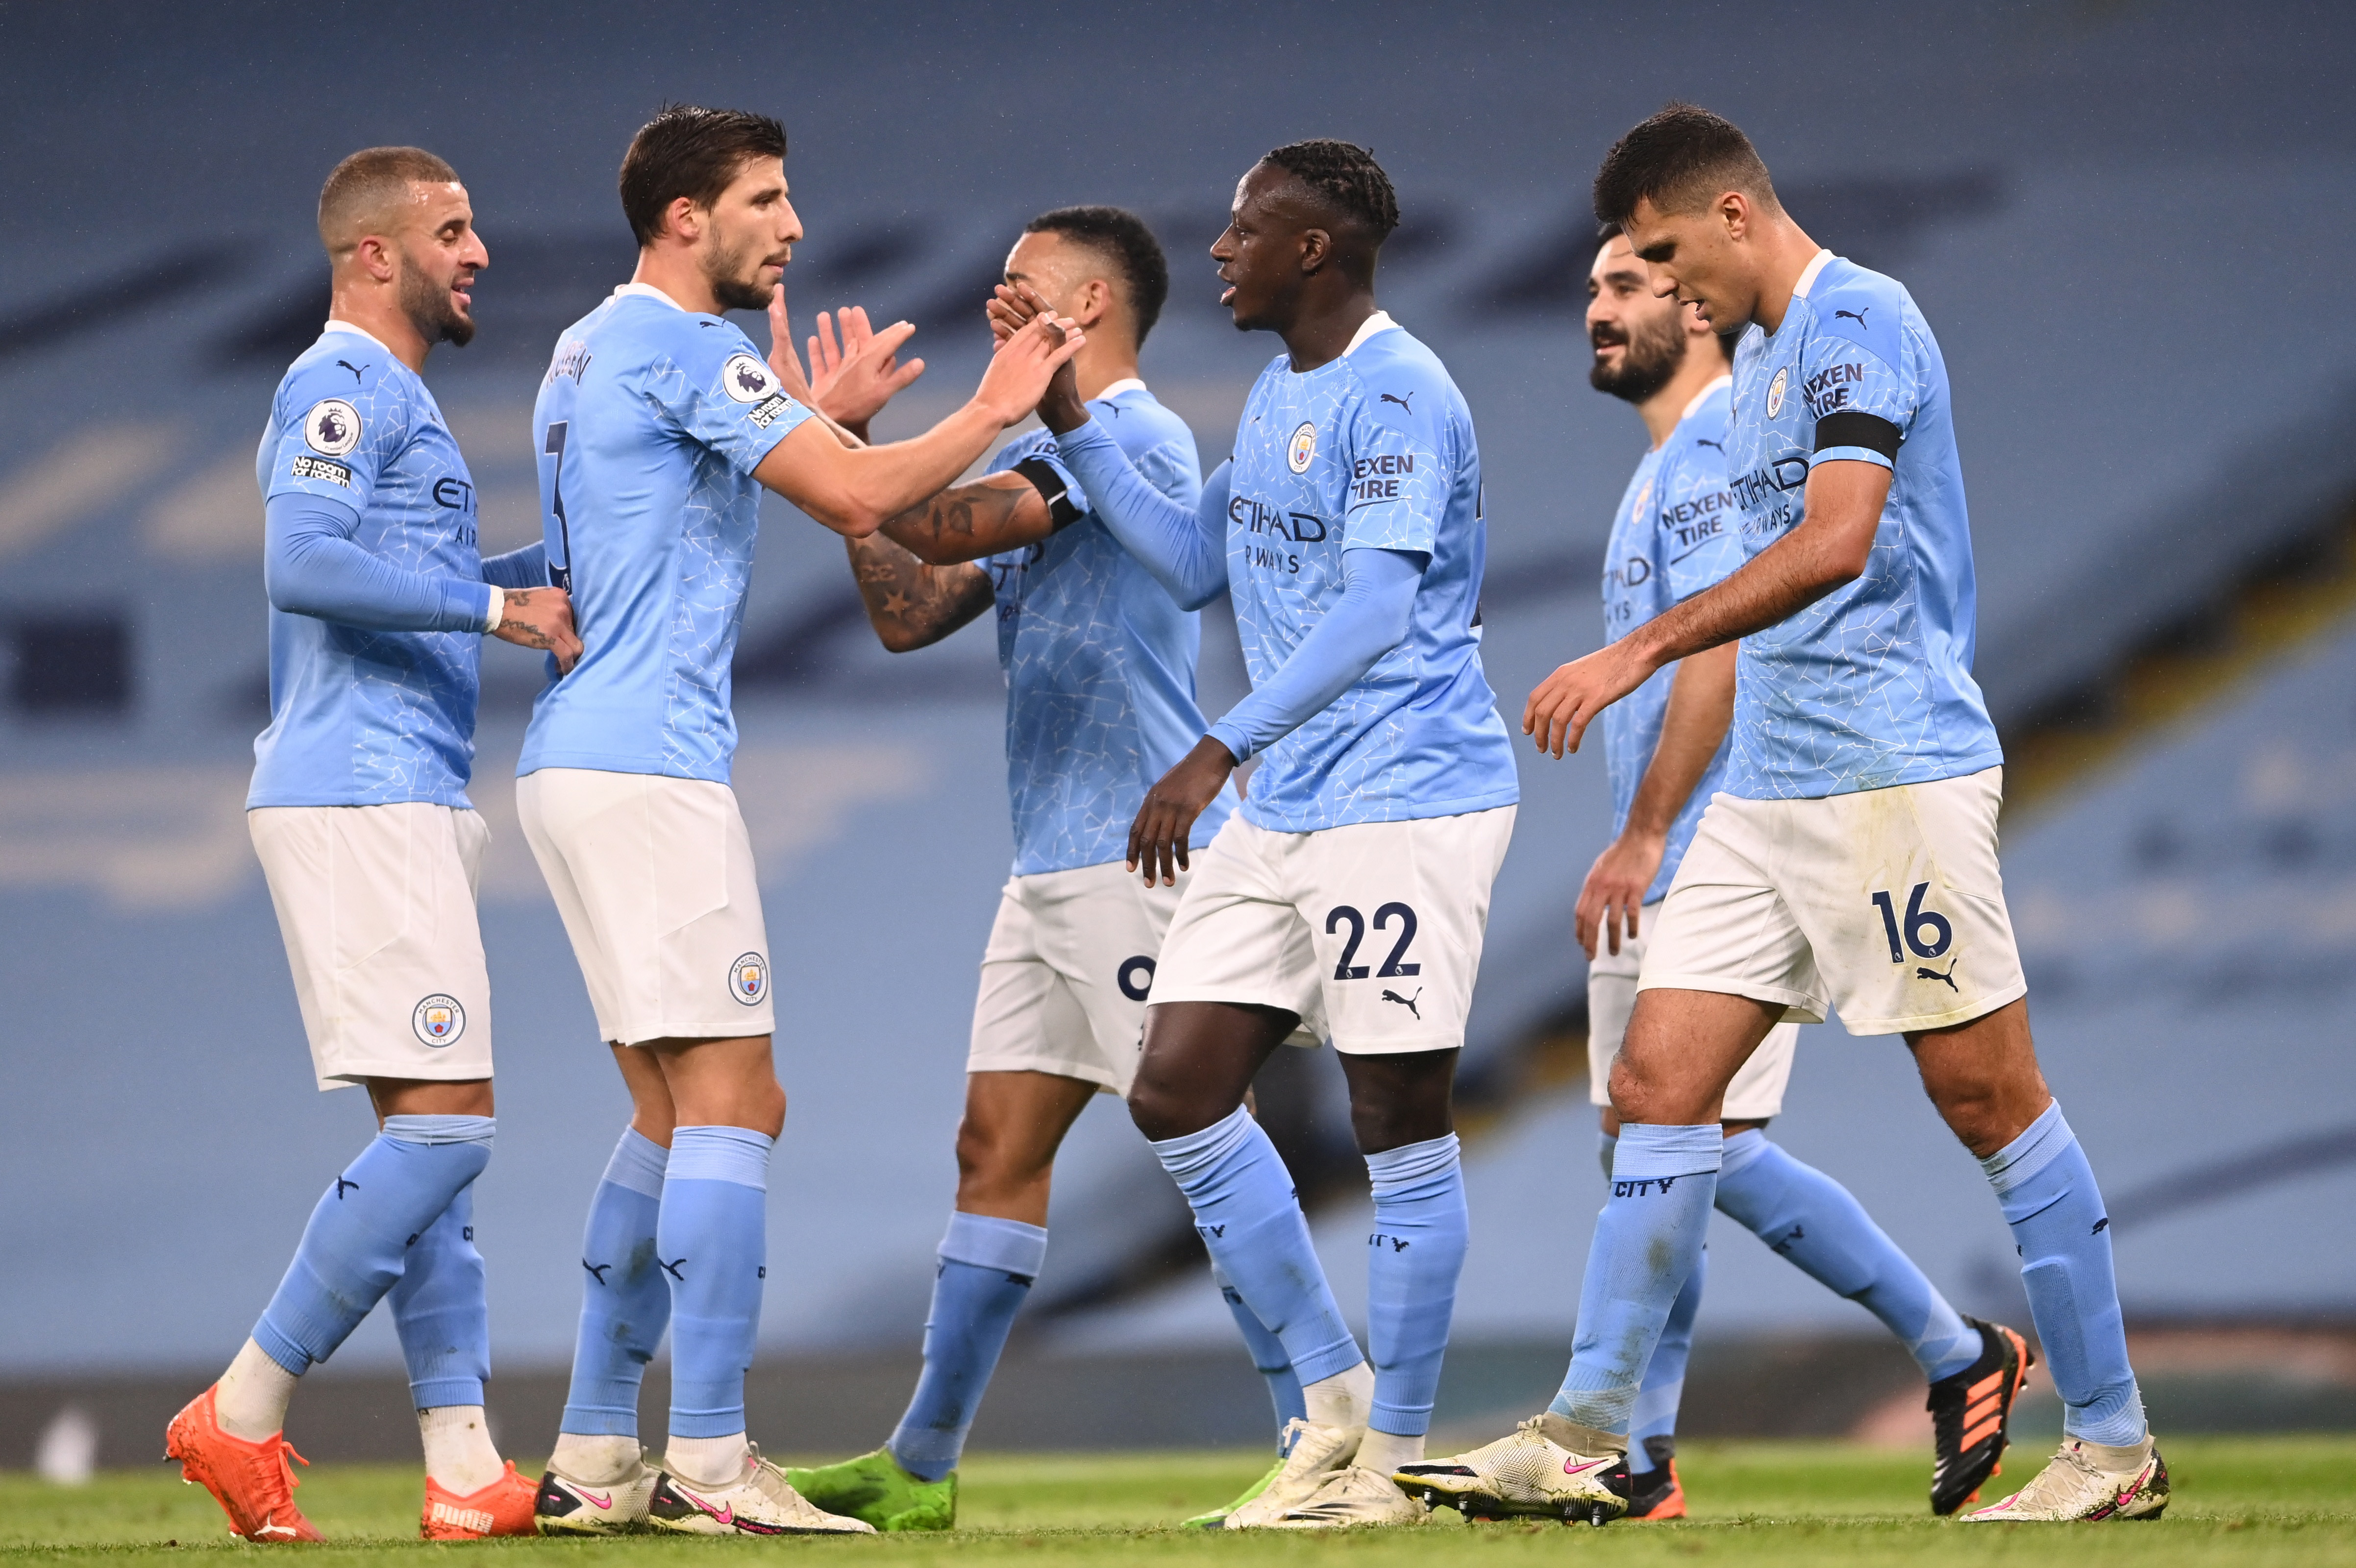 Manchester City's Benjamin Mendy celebrates scoring their third goal with teammates. Photo: Reuters